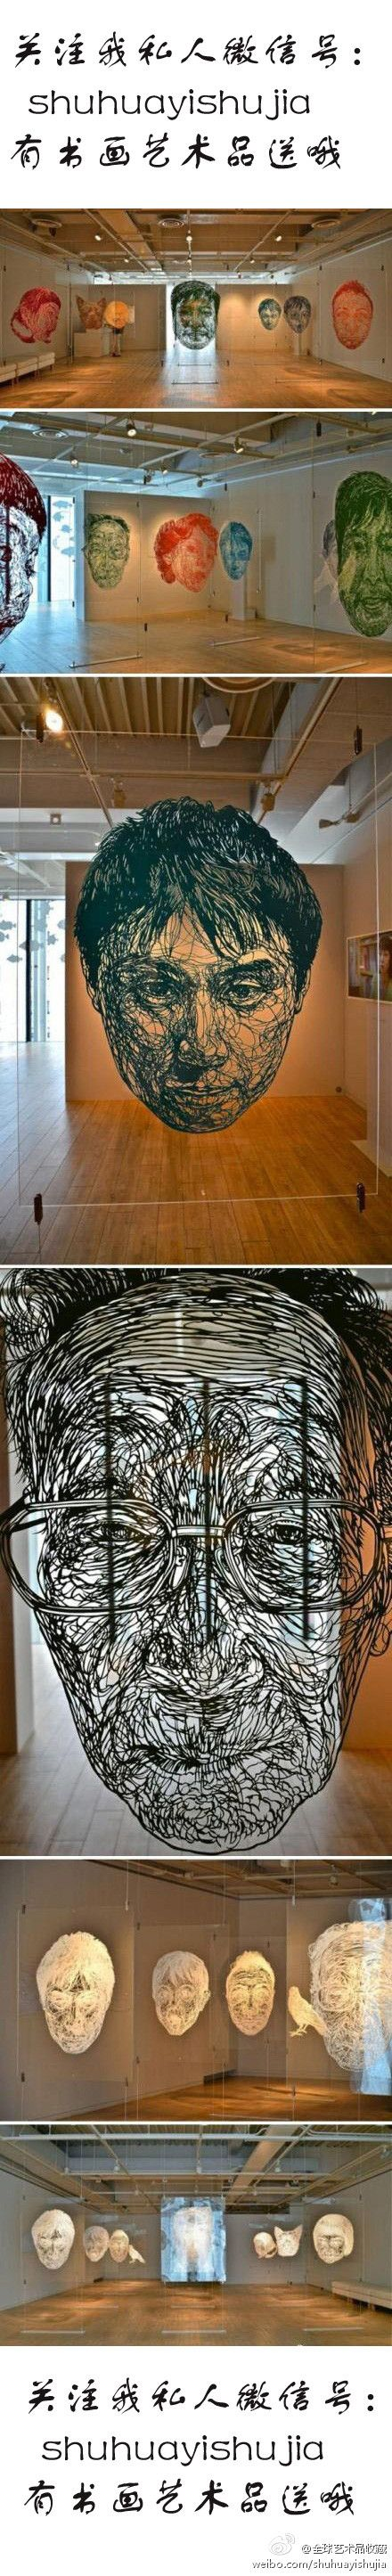 Life-sized paper cut by Japanese artist Risa Fukui